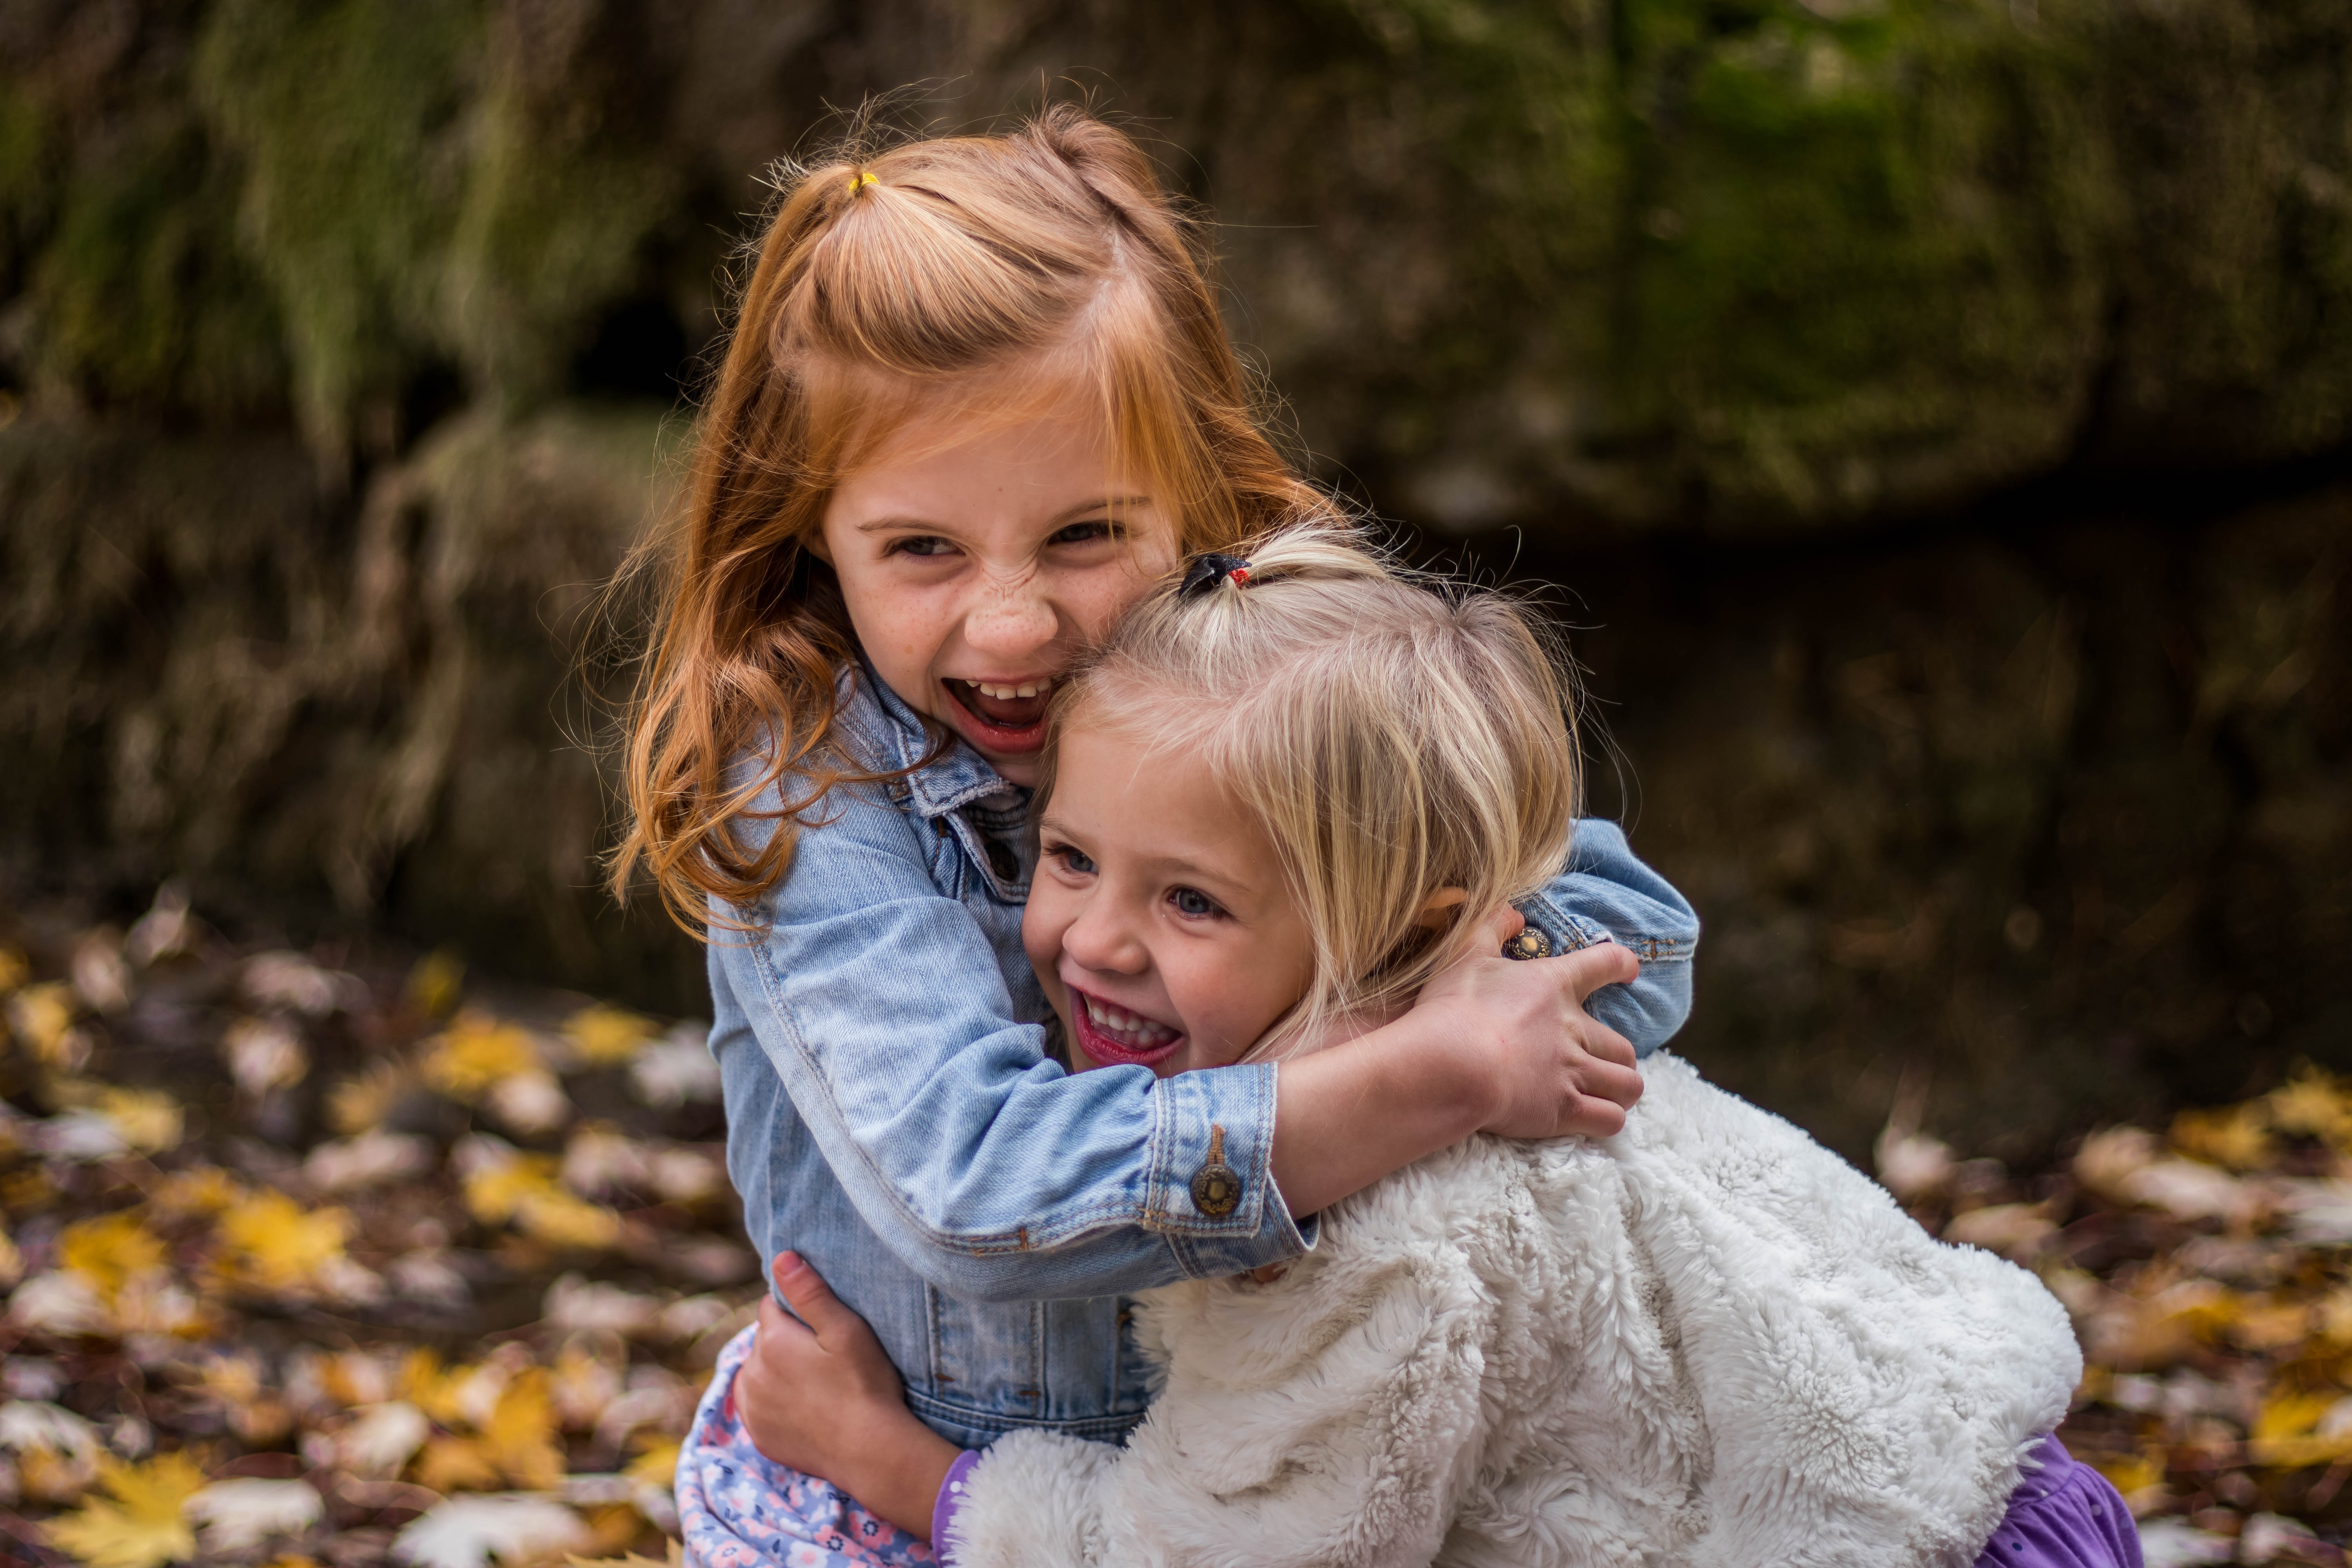 2 Girls Hugging Each Other Outdoor during Daytime, Children, Cute, Excited, Excitement, HQ Photo